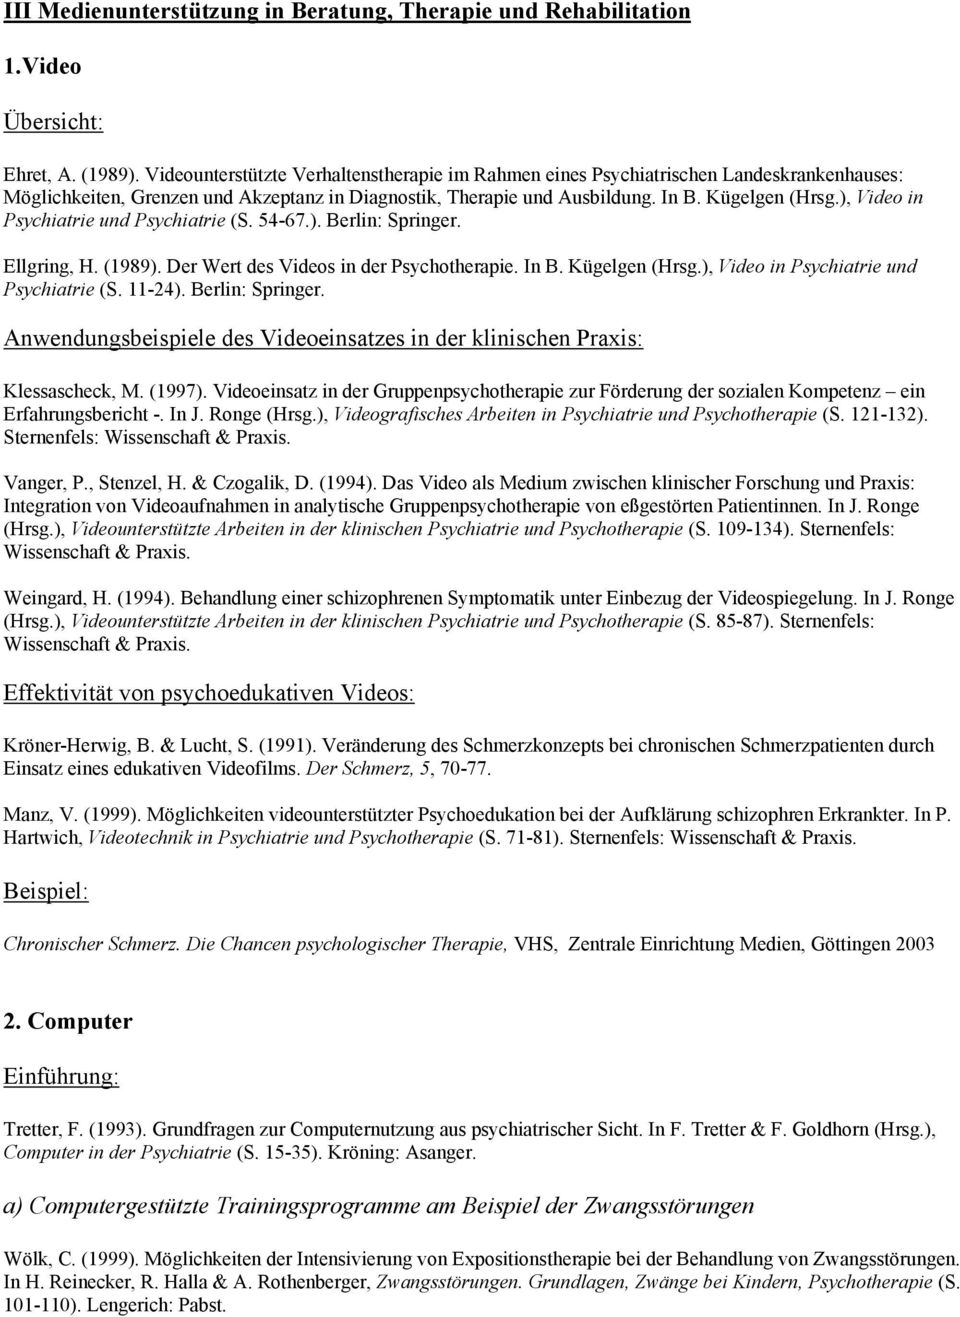 ), Video in Psychiatrie und Psychiatrie (S. 54-67.). Berlin: Springer. Ellgring, H. (1989). Der Wert des Videos in der Psychotherapie. In B. Kügelgen (Hrsg.), Video in Psychiatrie und Psychiatrie (S. 11-24).